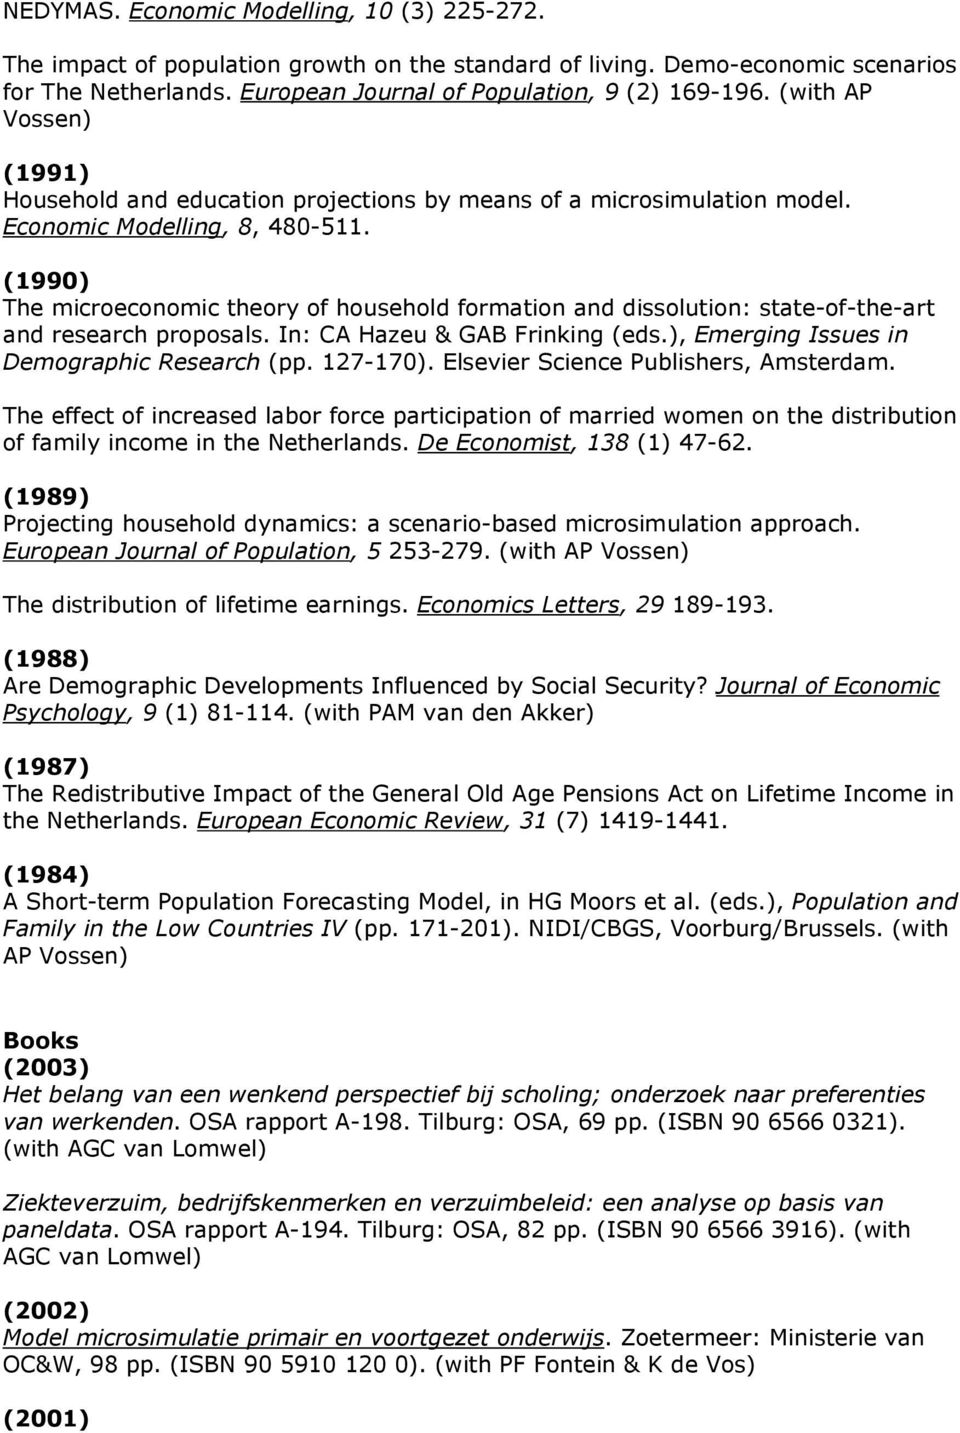 (1990) The microeconomic theory of household formation and dissolution: state-of-the-art and research proposals. In: CA Hazeu & GAB Frinking (eds.), Emerging Issues in Demographic Research (pp.